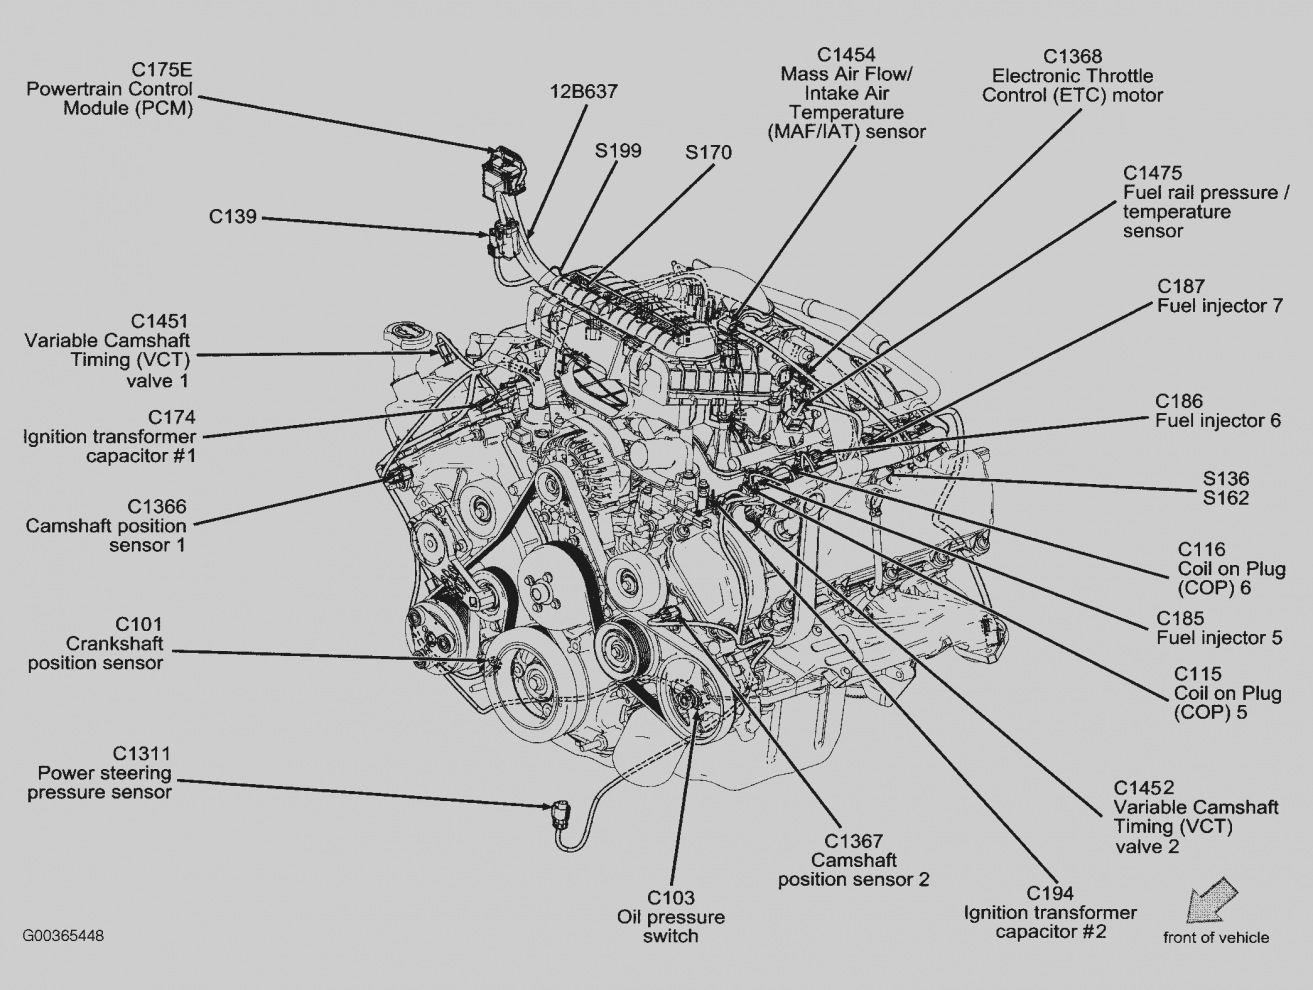 medium resolution of 2010 f150 engine diagram wiring diagram inside 2007 ford f150 4 6 engine diagram 2010 f150 engine